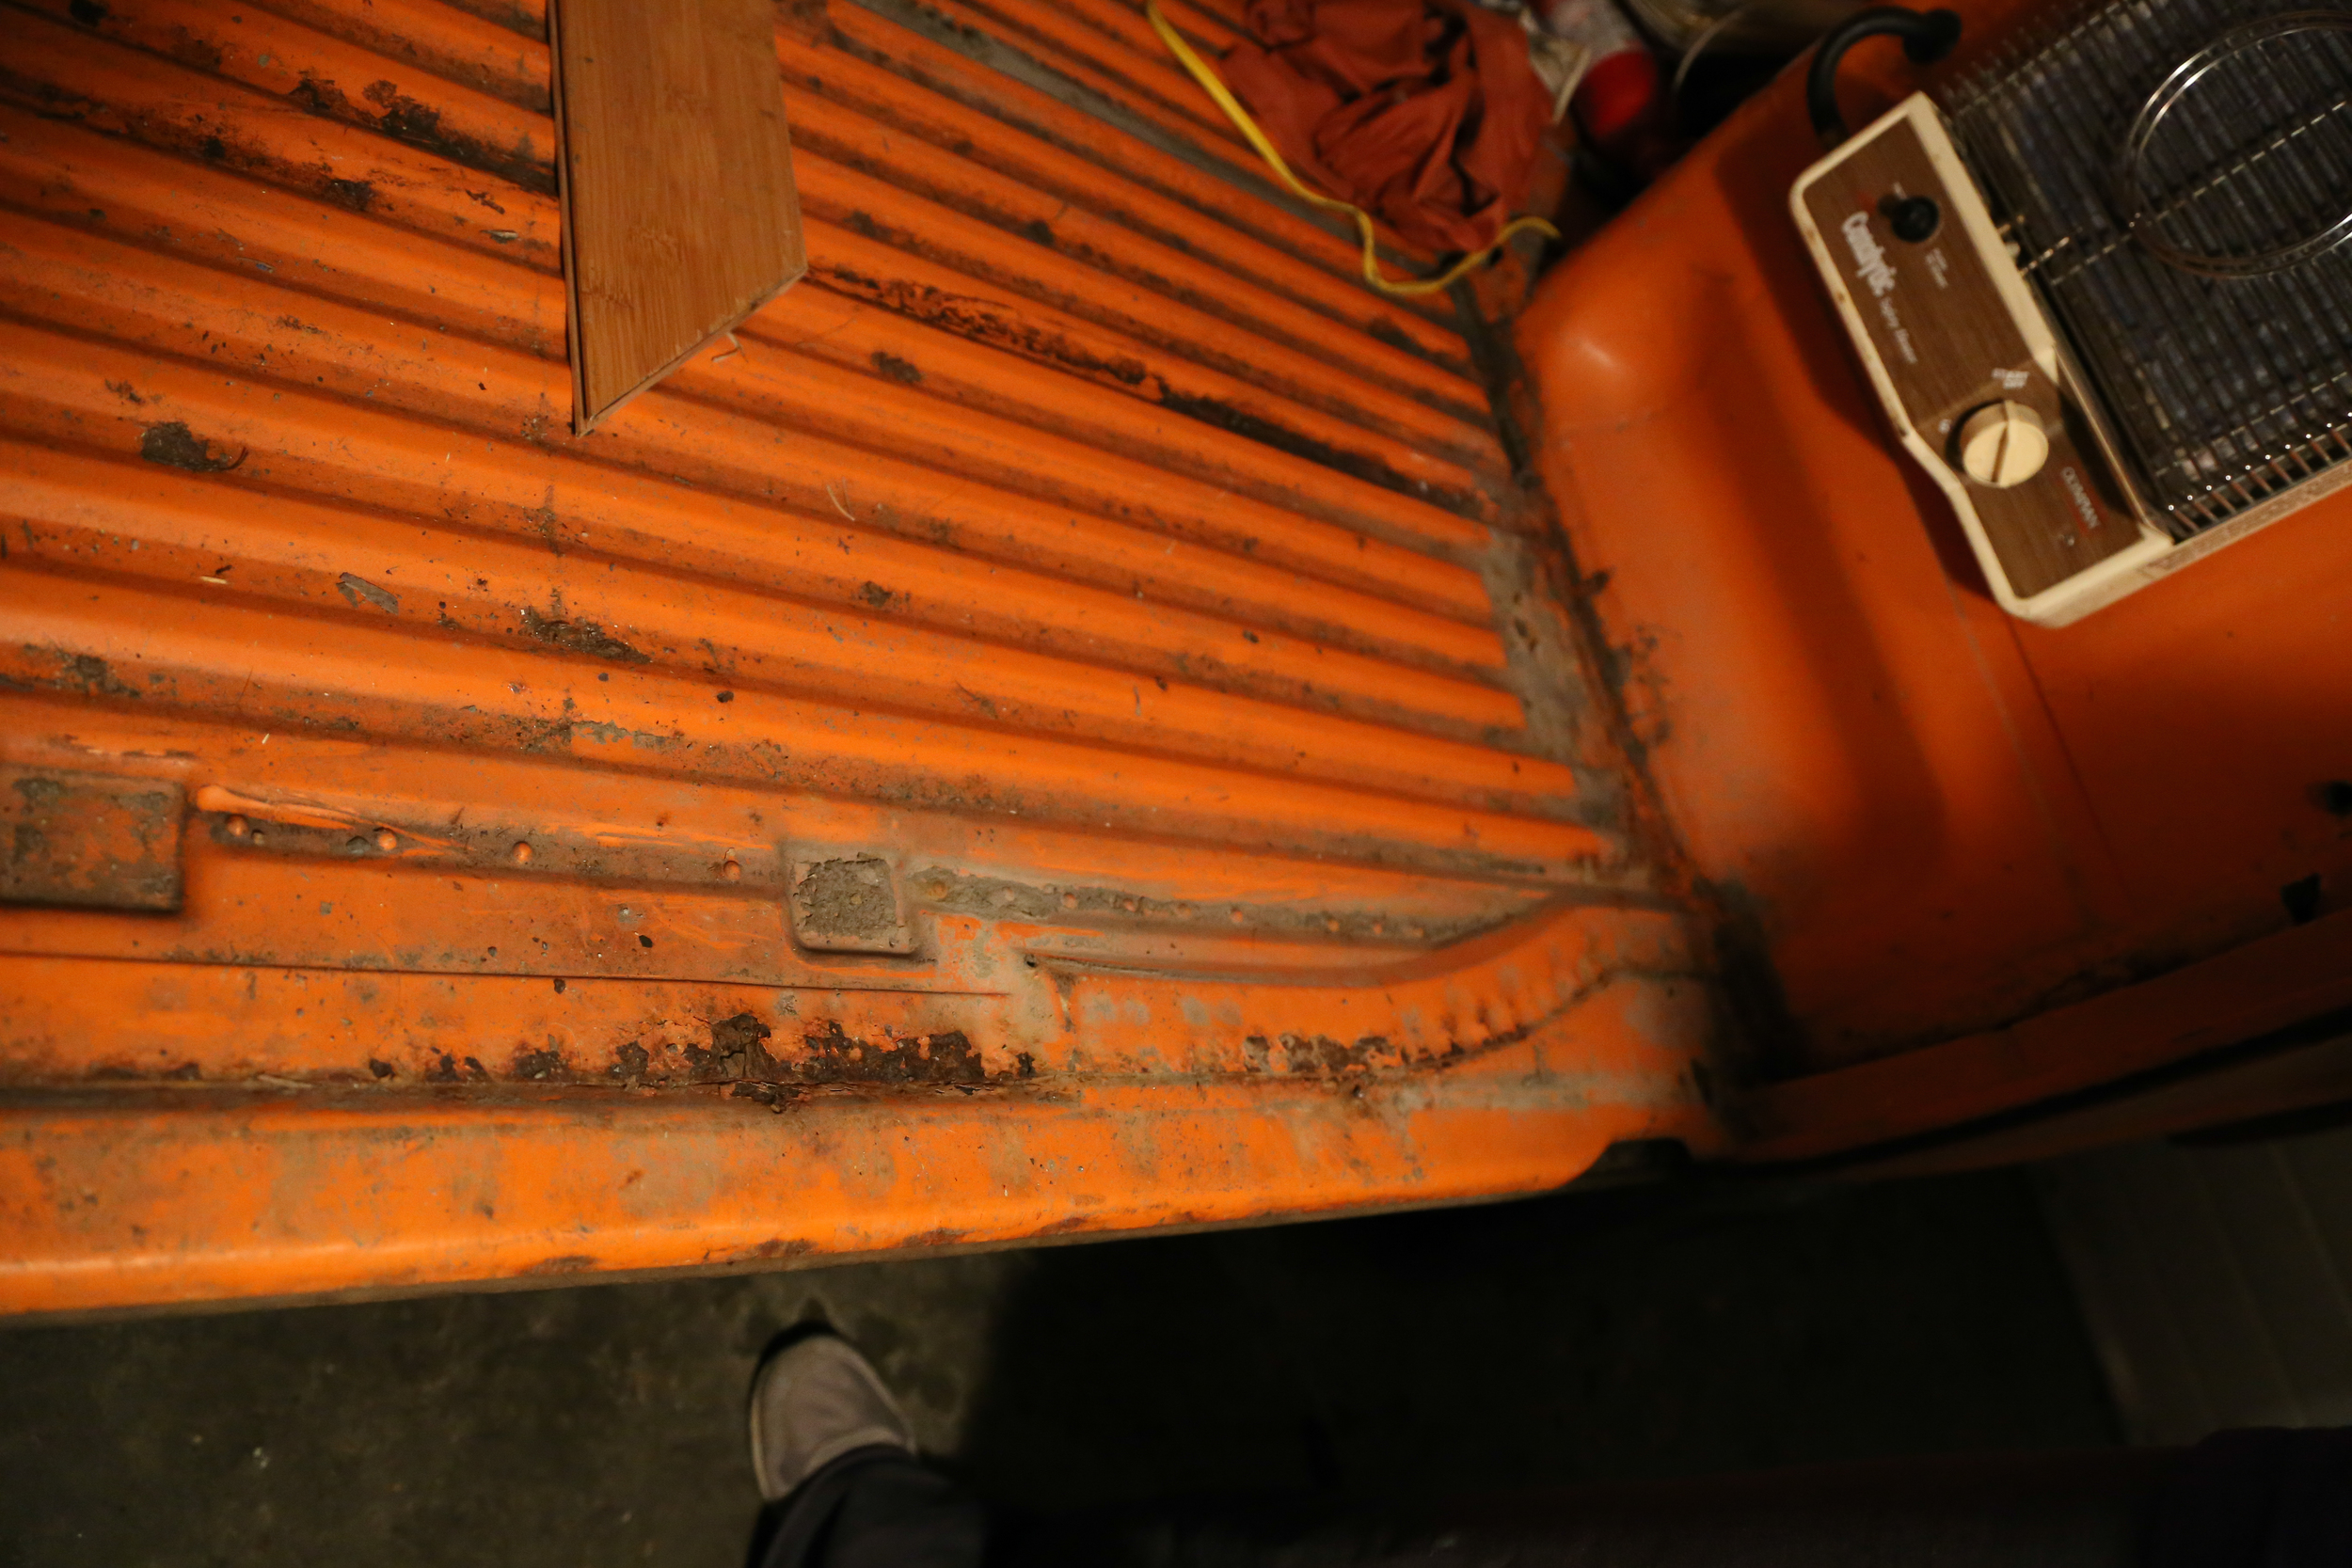 We found some rust that has to be fixed before we can instal soundproofing and all of the furniture.